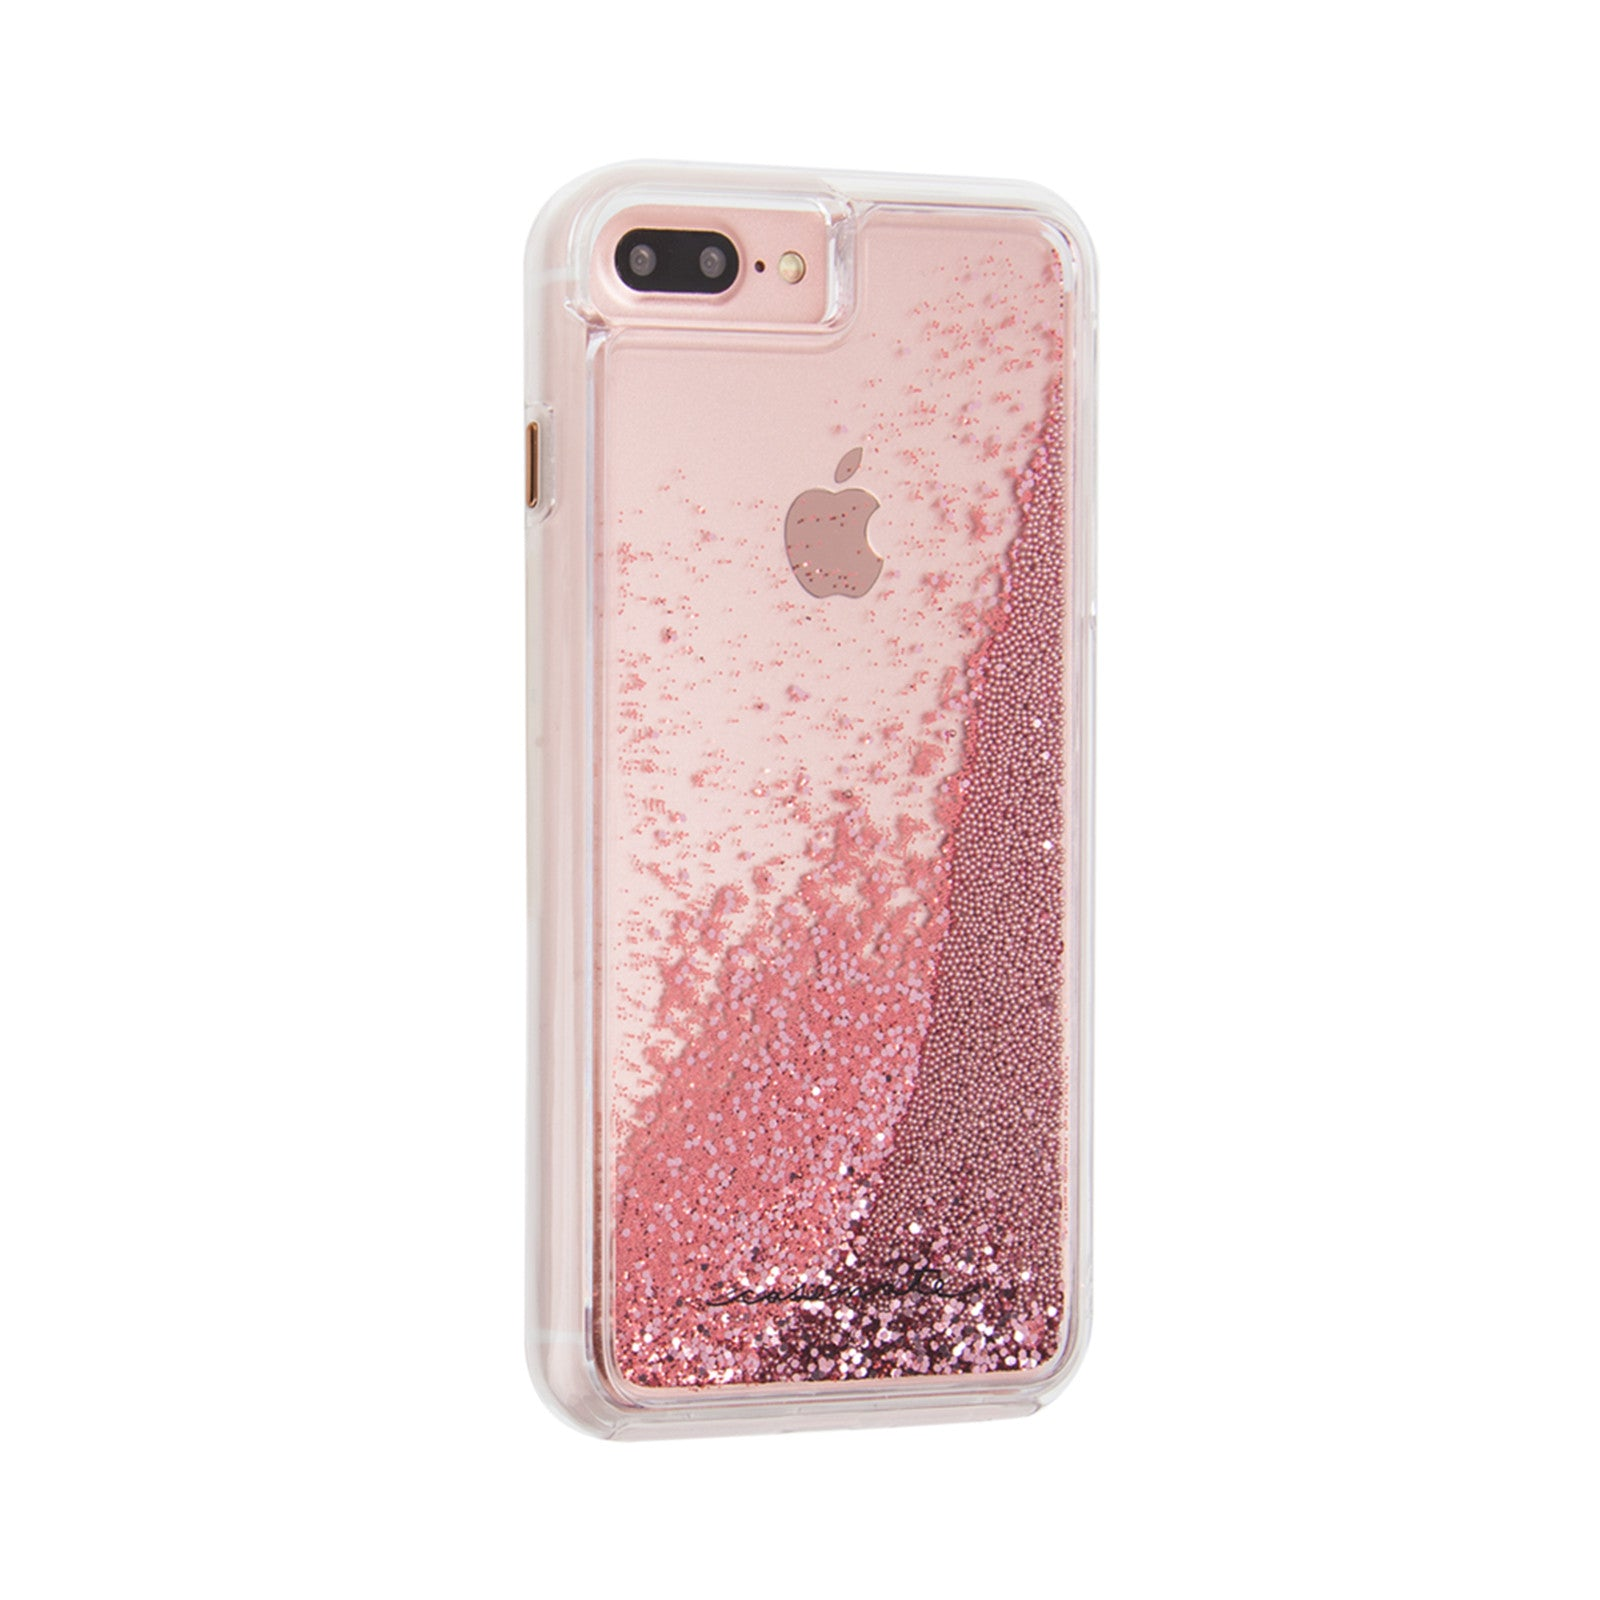 Naked tough case for iphone 6 pics 440